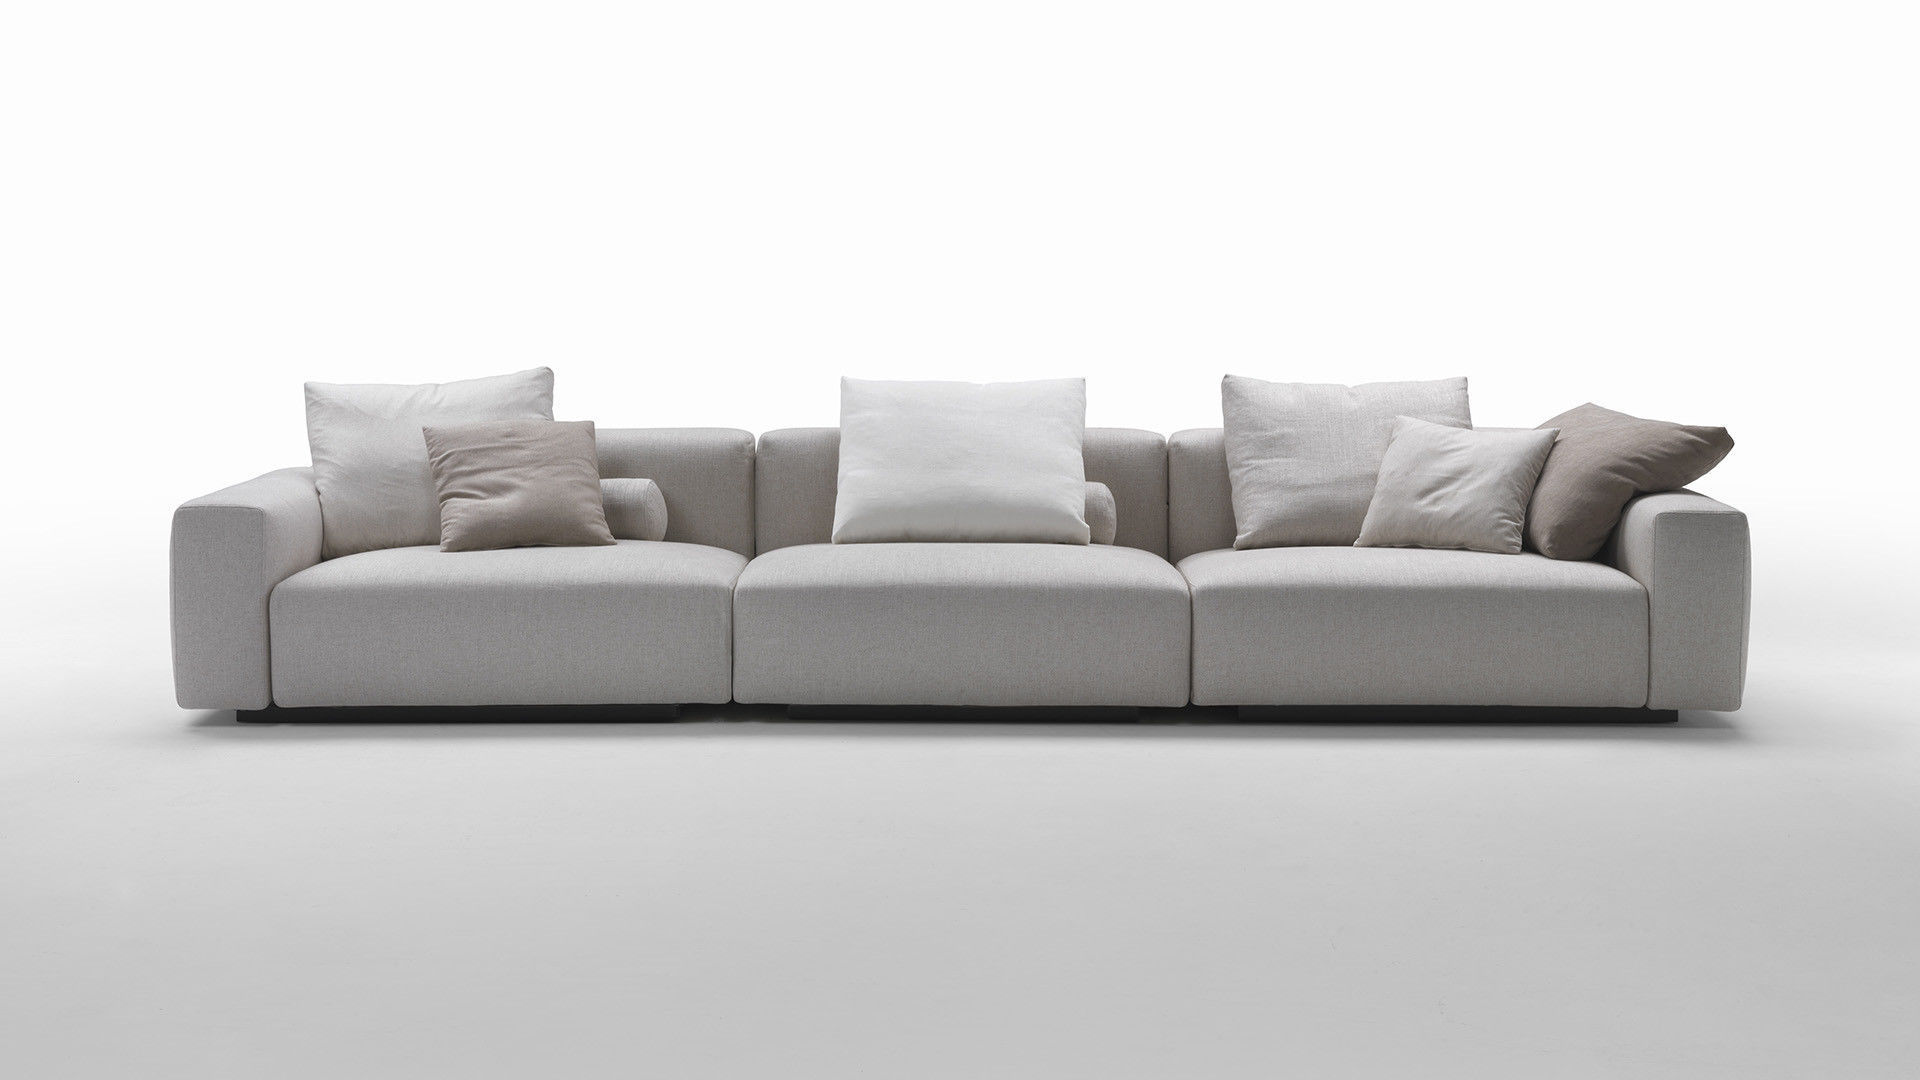 modern sofa bed covers concept-Lovely sofa Bed Covers Concept